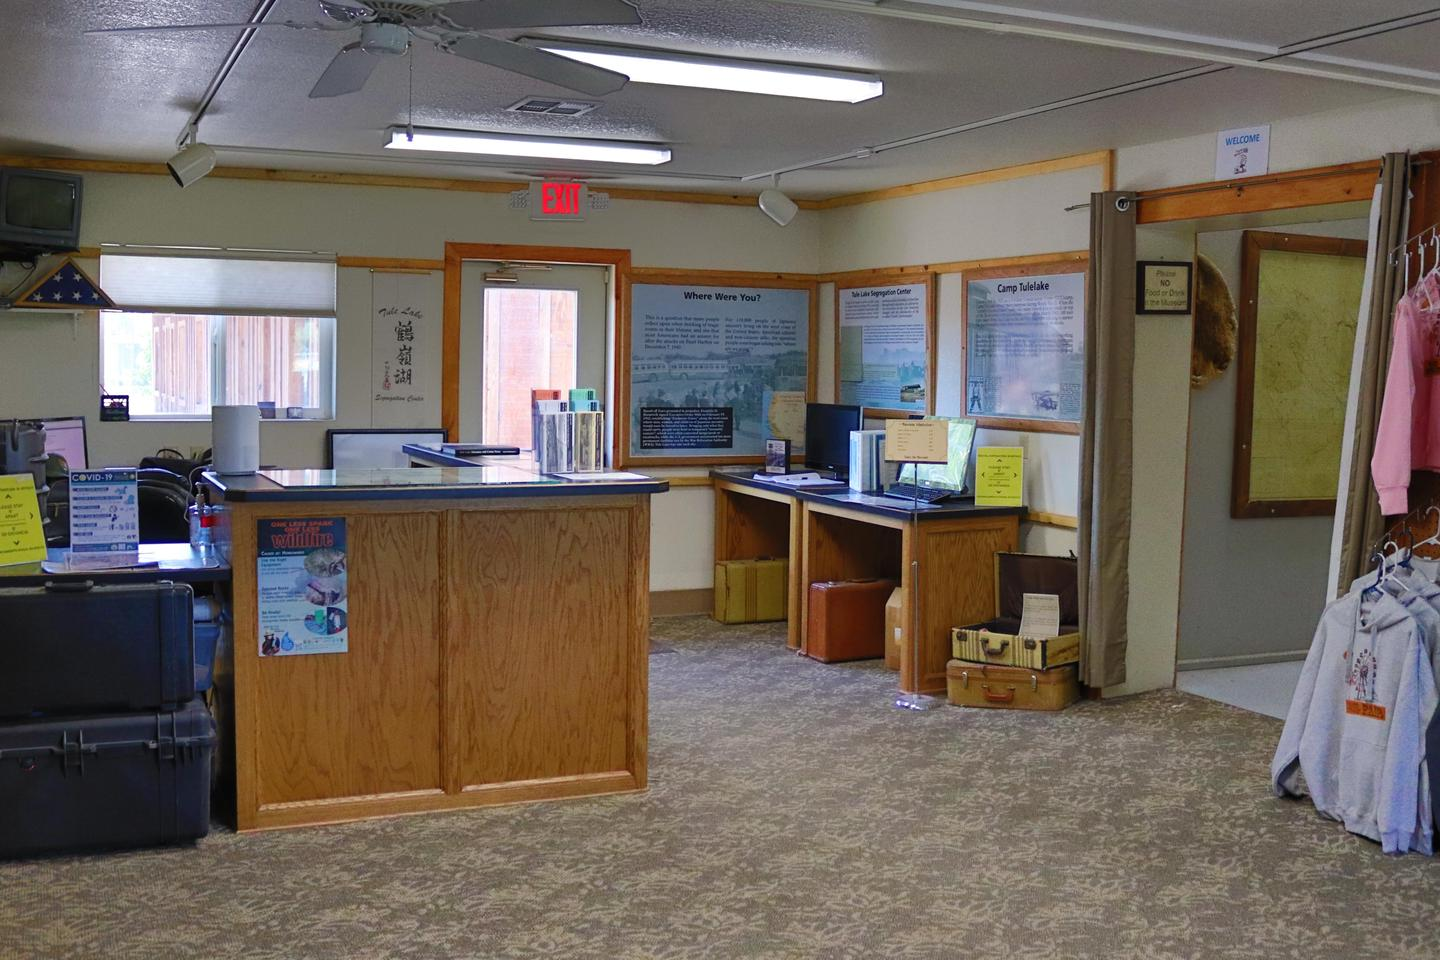 Front Desk and displaysFront Desk to the left and displays on the right